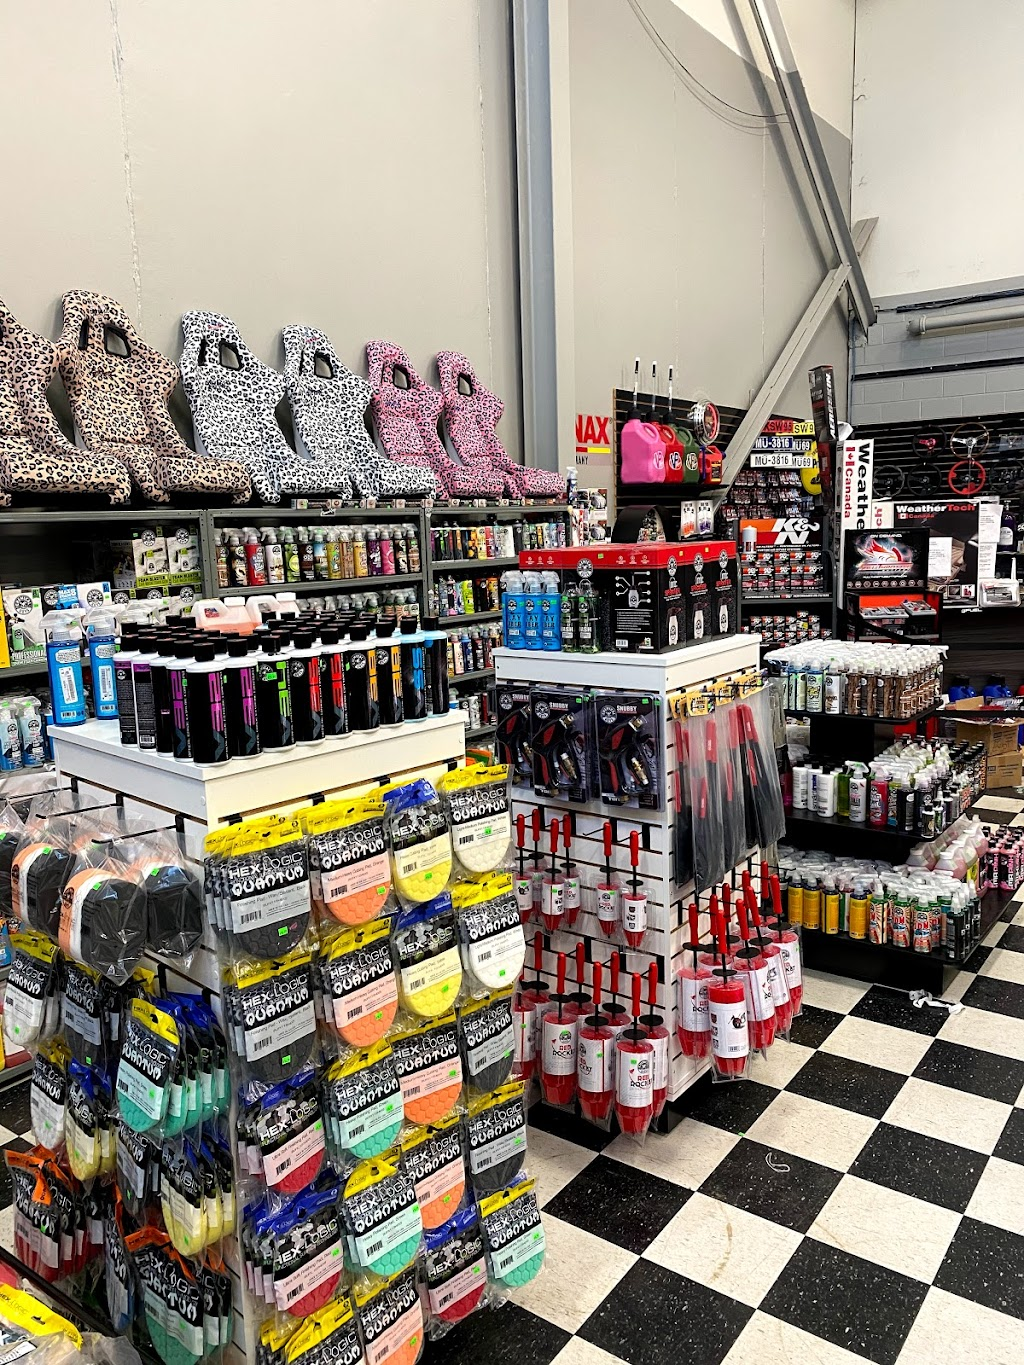 Automotive Warehouse Auto Parts & Accesories - car repair  | Photo 5 of 10 | Address: 343 Airport Rd, Niagara-on-the-Lake, ON L0S 1J0, Canada | Phone: (905) 682-1711